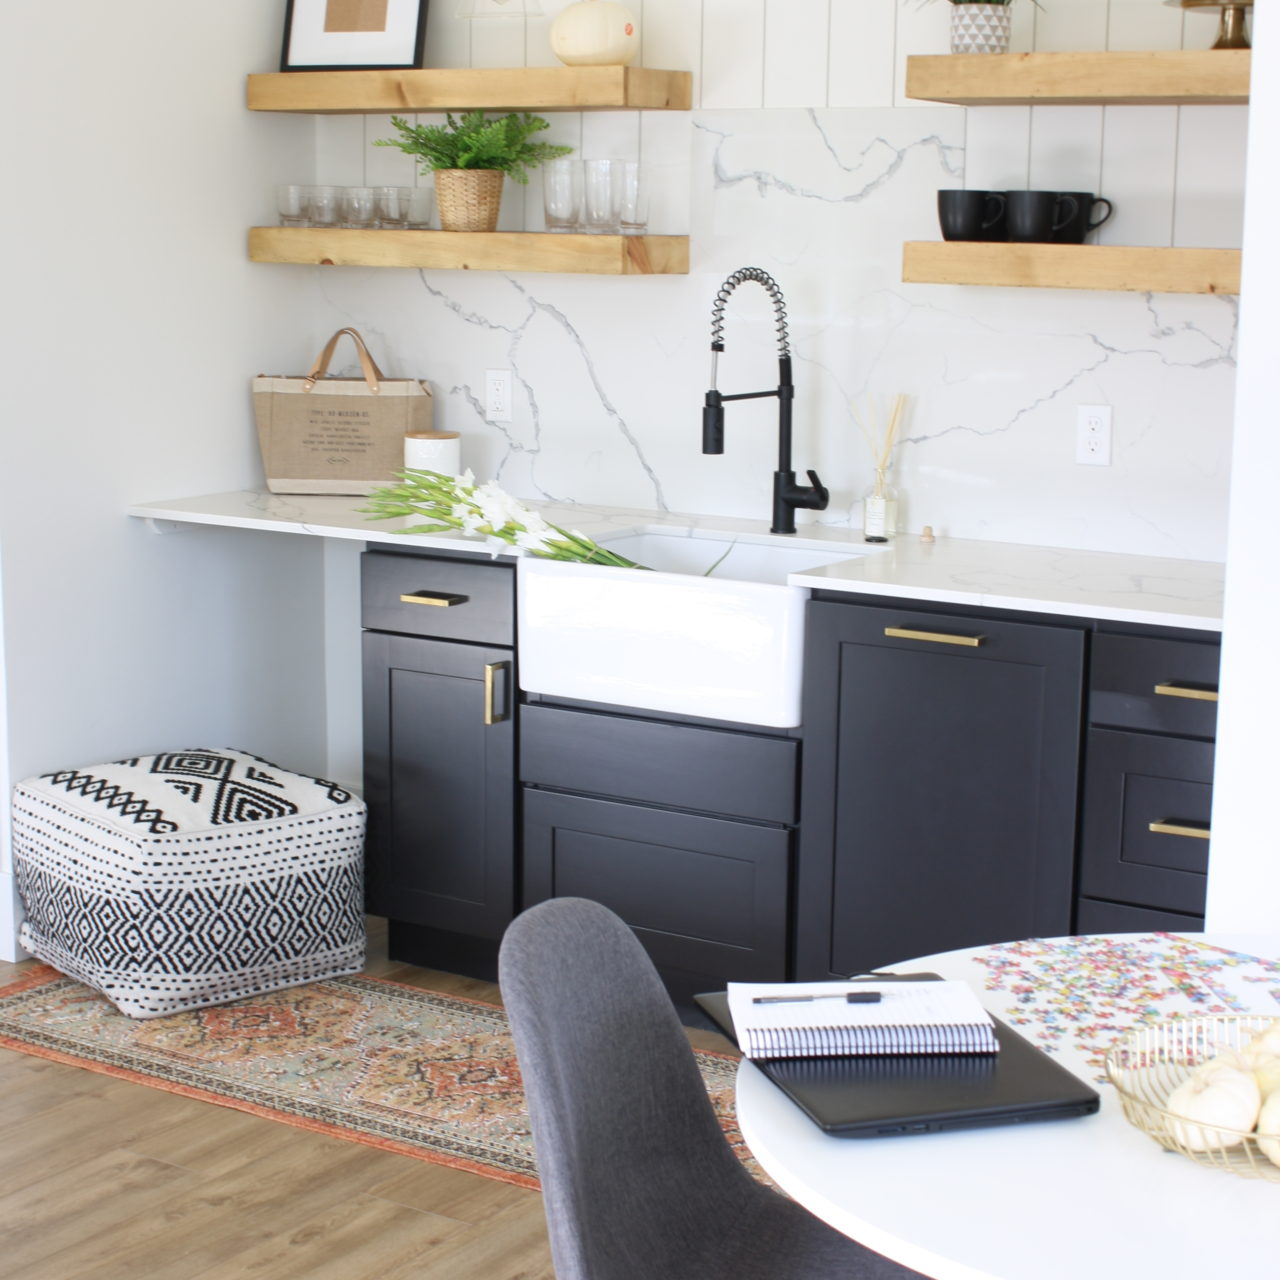 Scandinavian Farmhouse Kitchenette – Sources